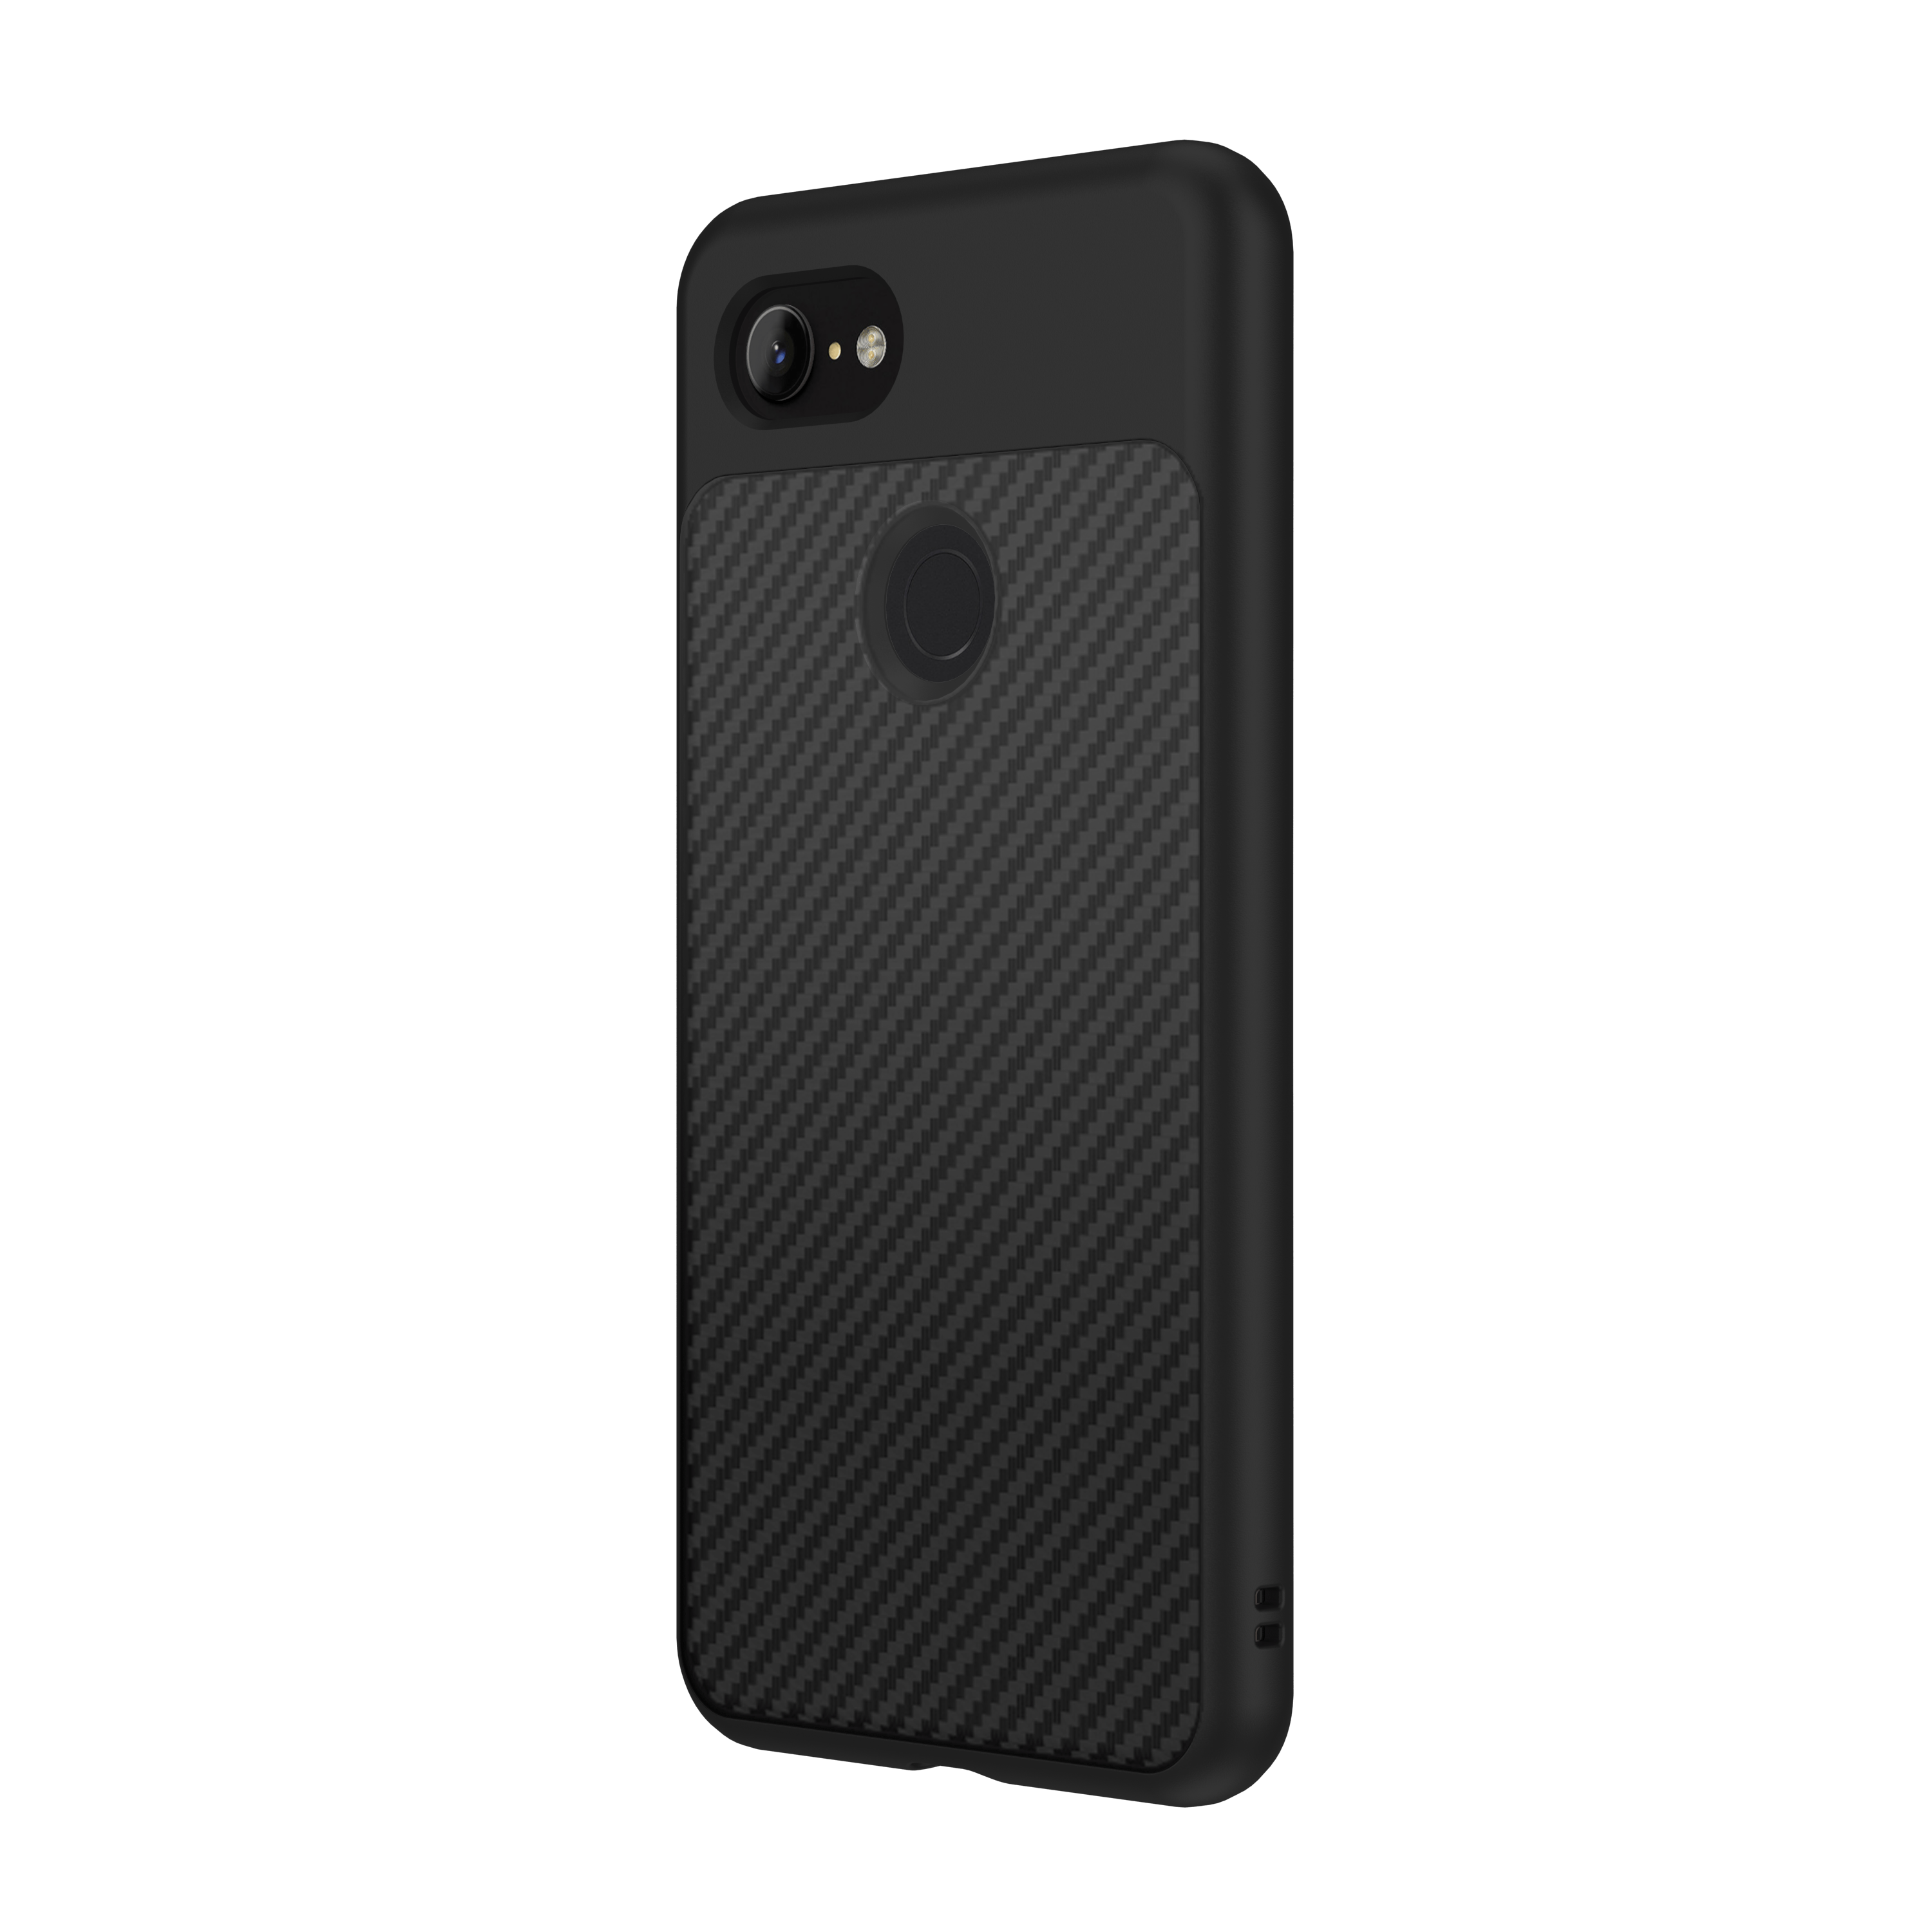 RhinoShield SolidSuit for Google Pixel 3 XL